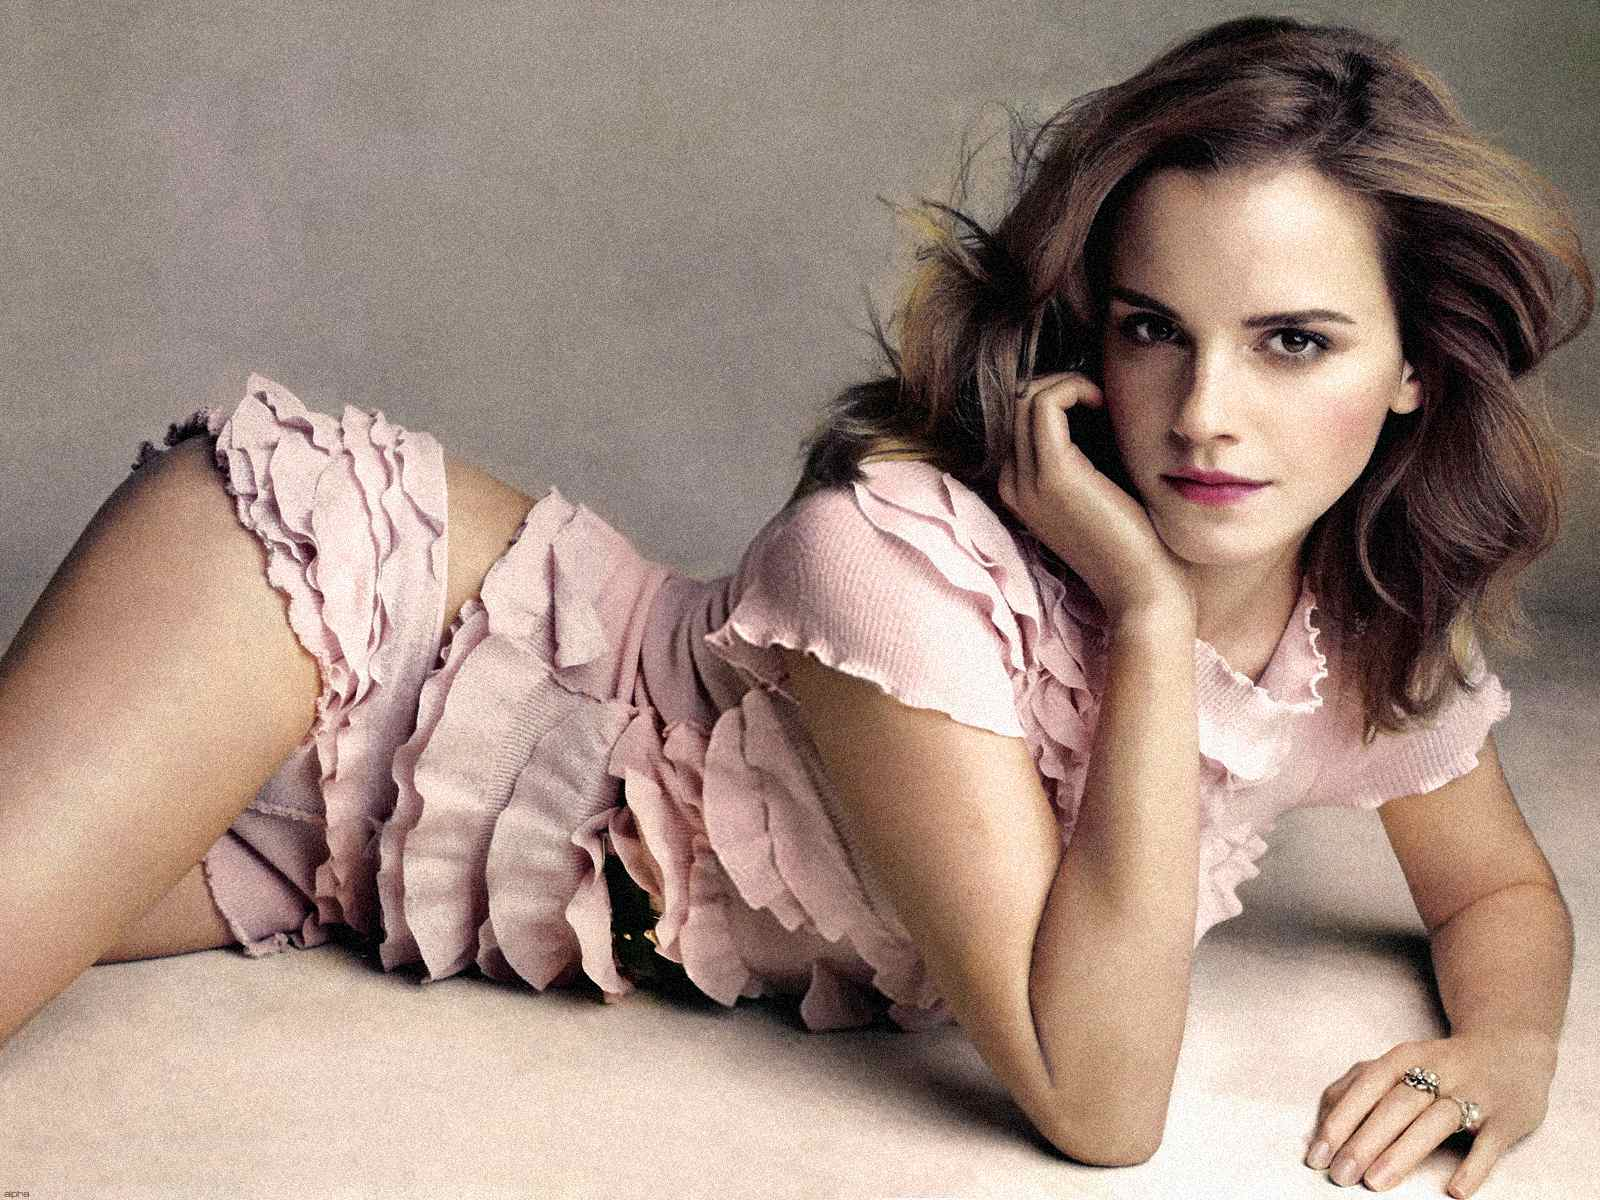 Emma Watson sexualizing herself